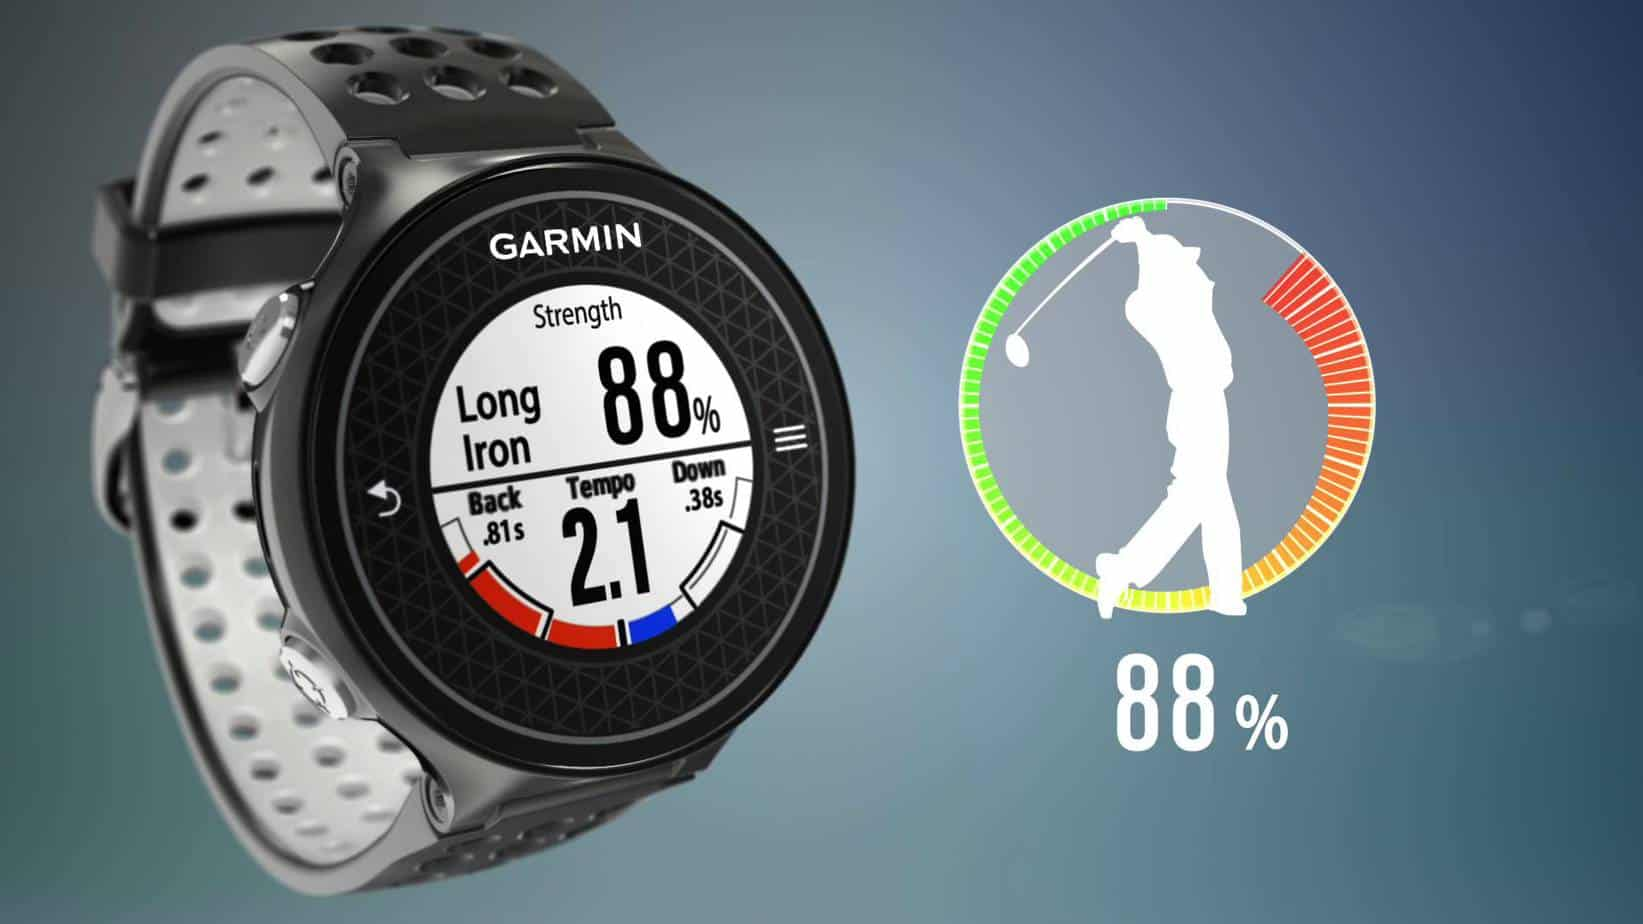 Image of the swing strength function screen on the Garmin S6 golf gps watch next to a man swinging a golf club.